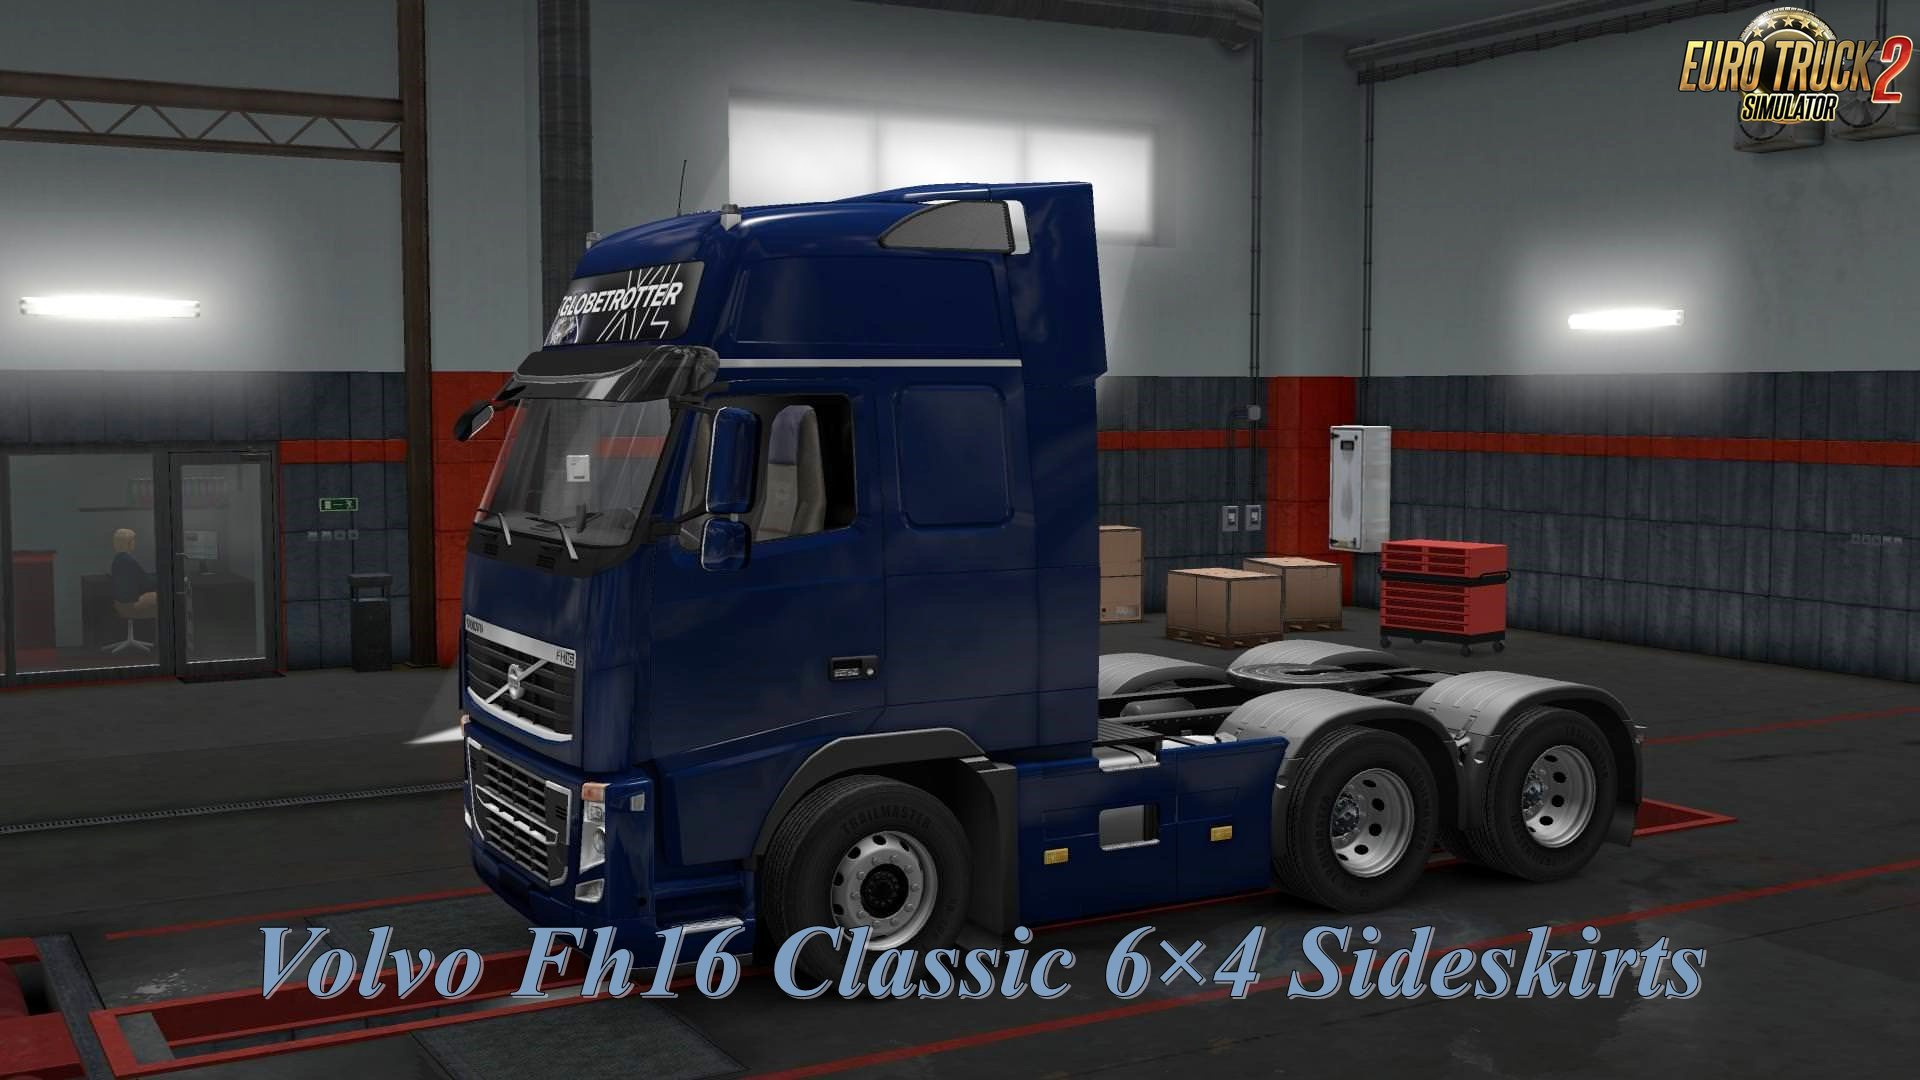 Volvo Fh16 Classic 6×4 Sideskirts for Ets2